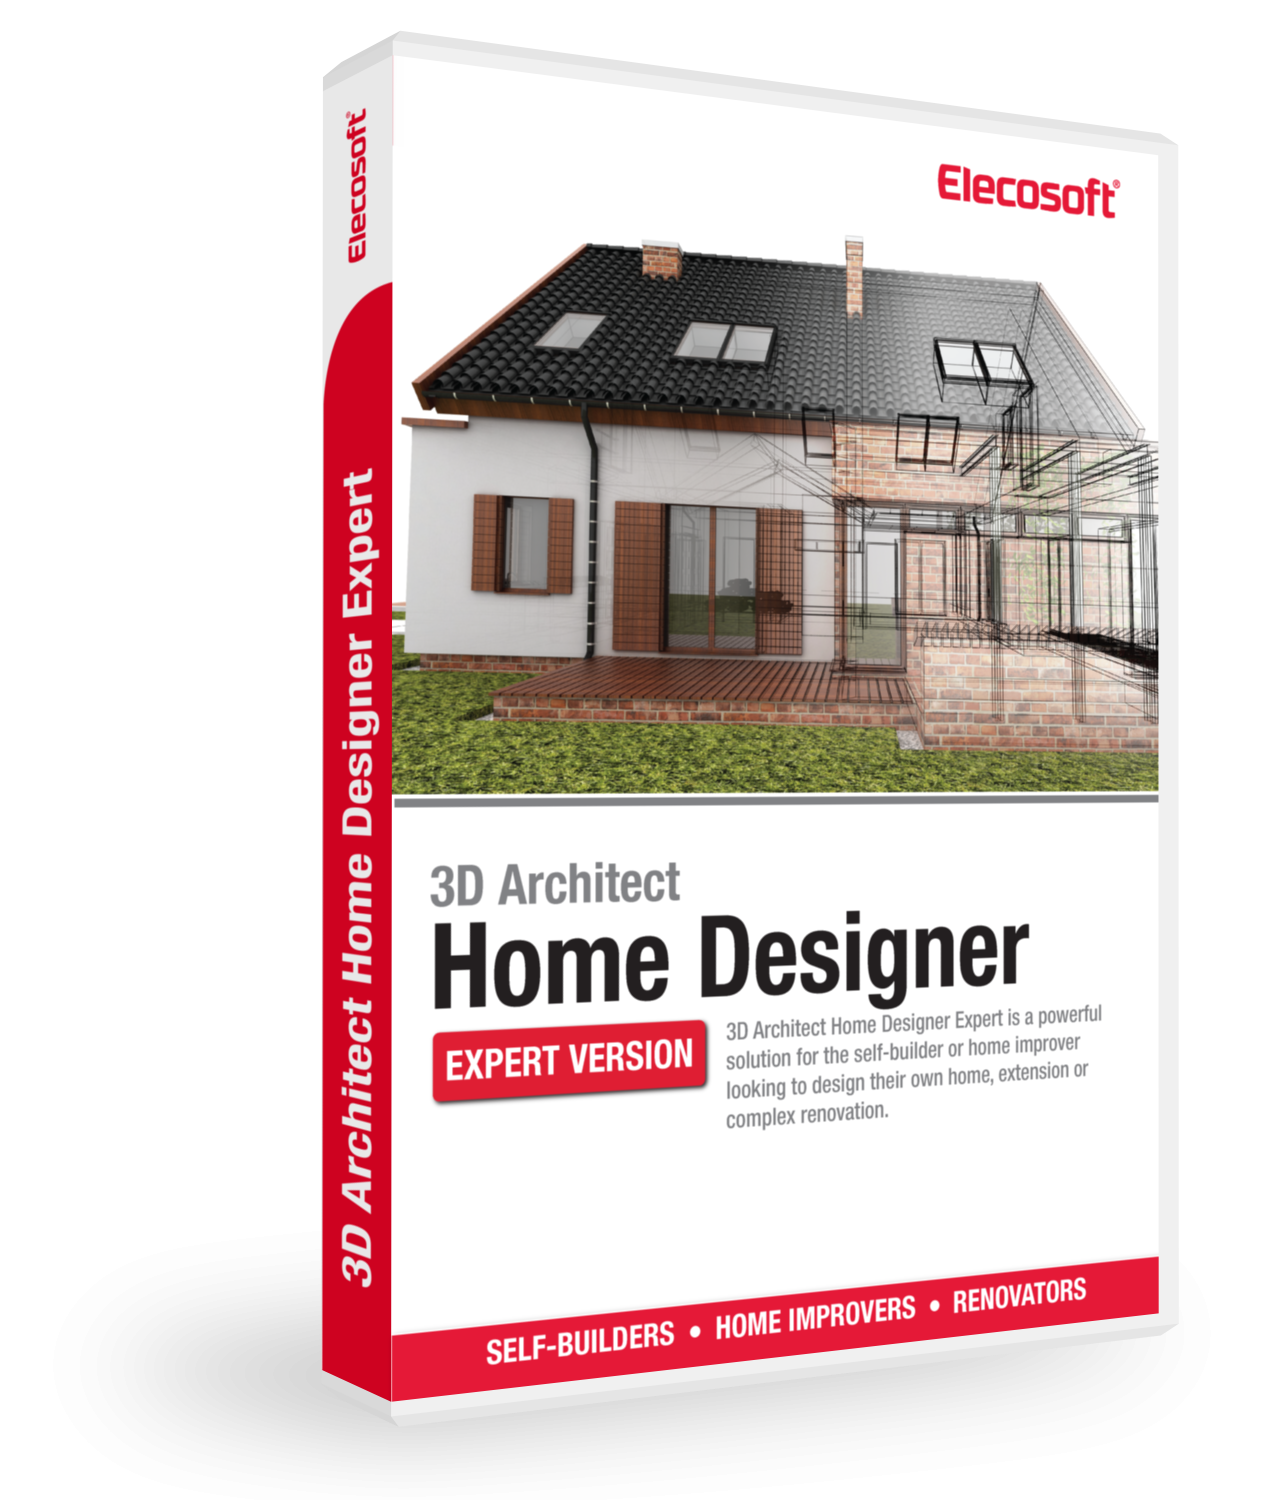 3D Architect Expert for self builders